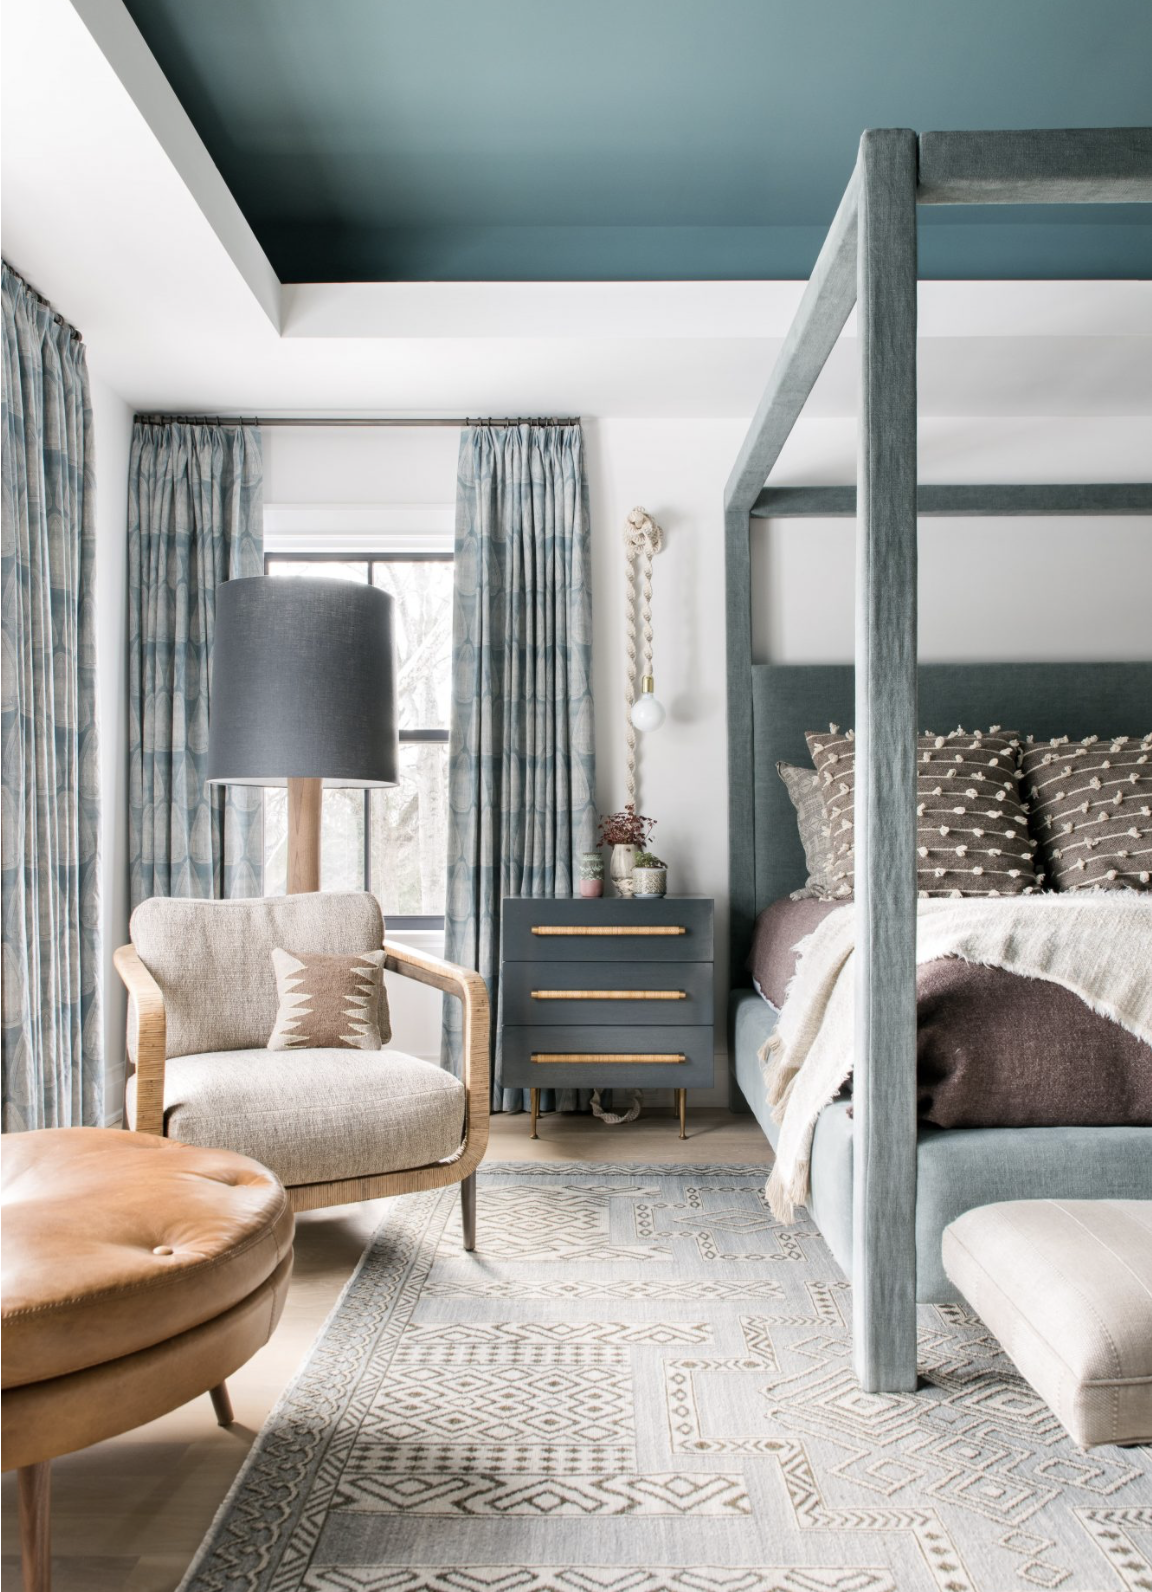 TOP 15 INTERIOR DESIGN TRENDS FOR 2020 - Collected ...